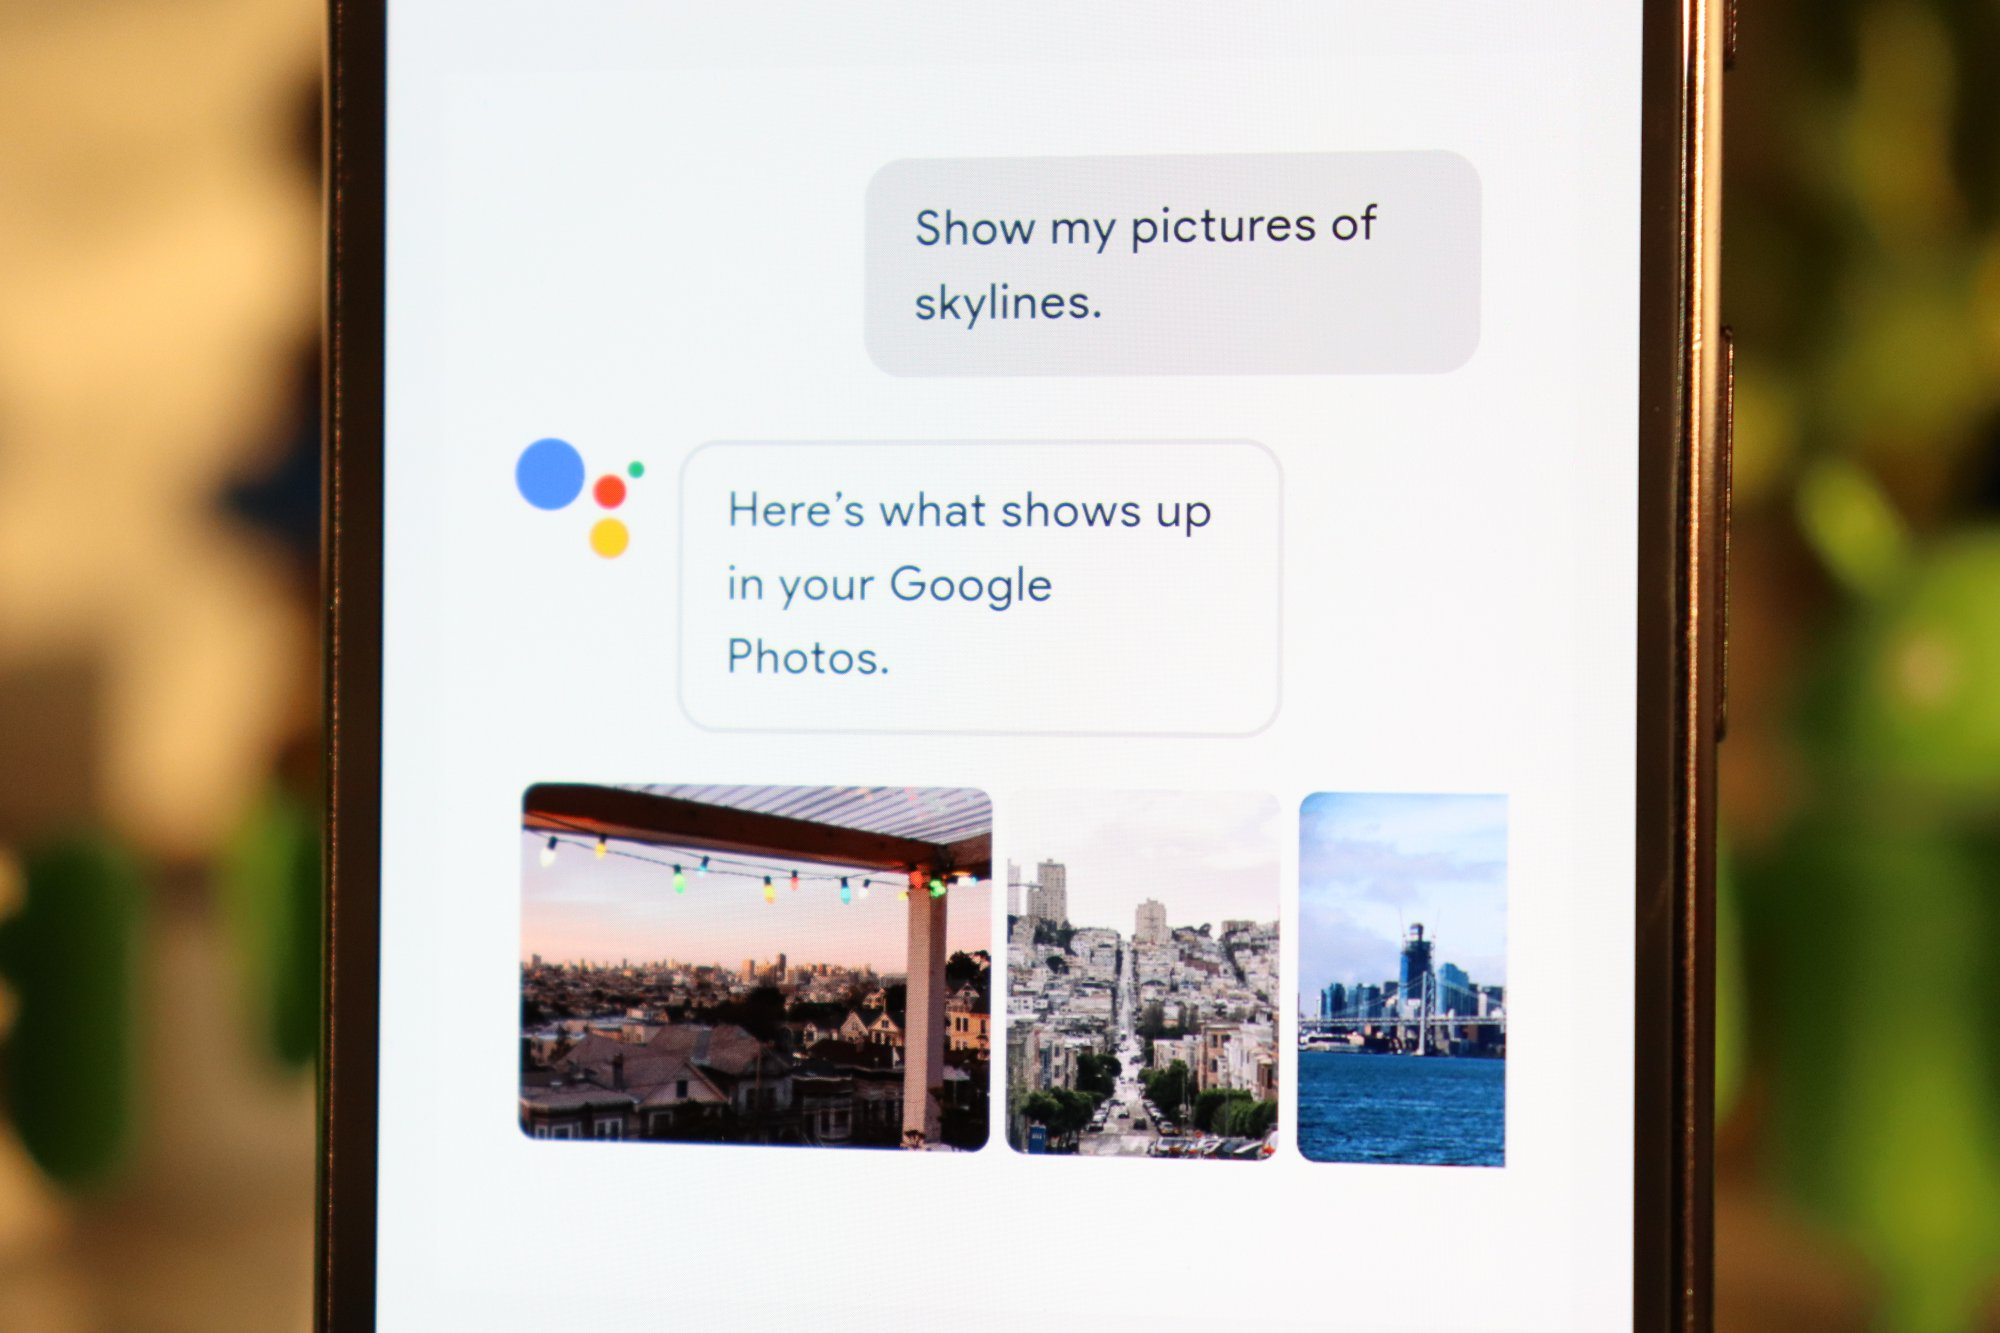 Google-Assistant-show-my-pictures